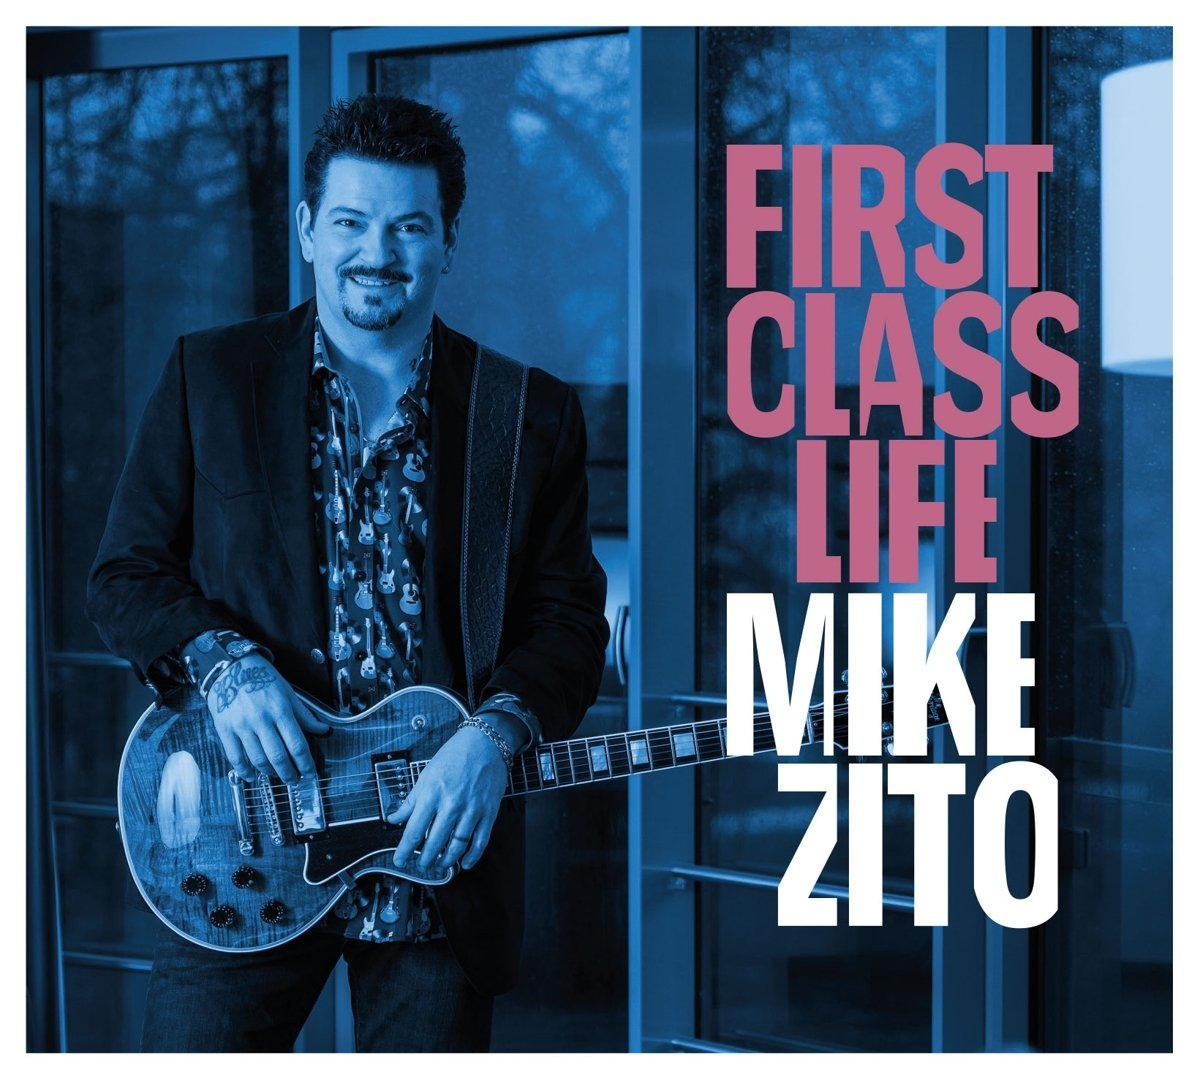 CD : Mike Zito - First Class Life (CD)